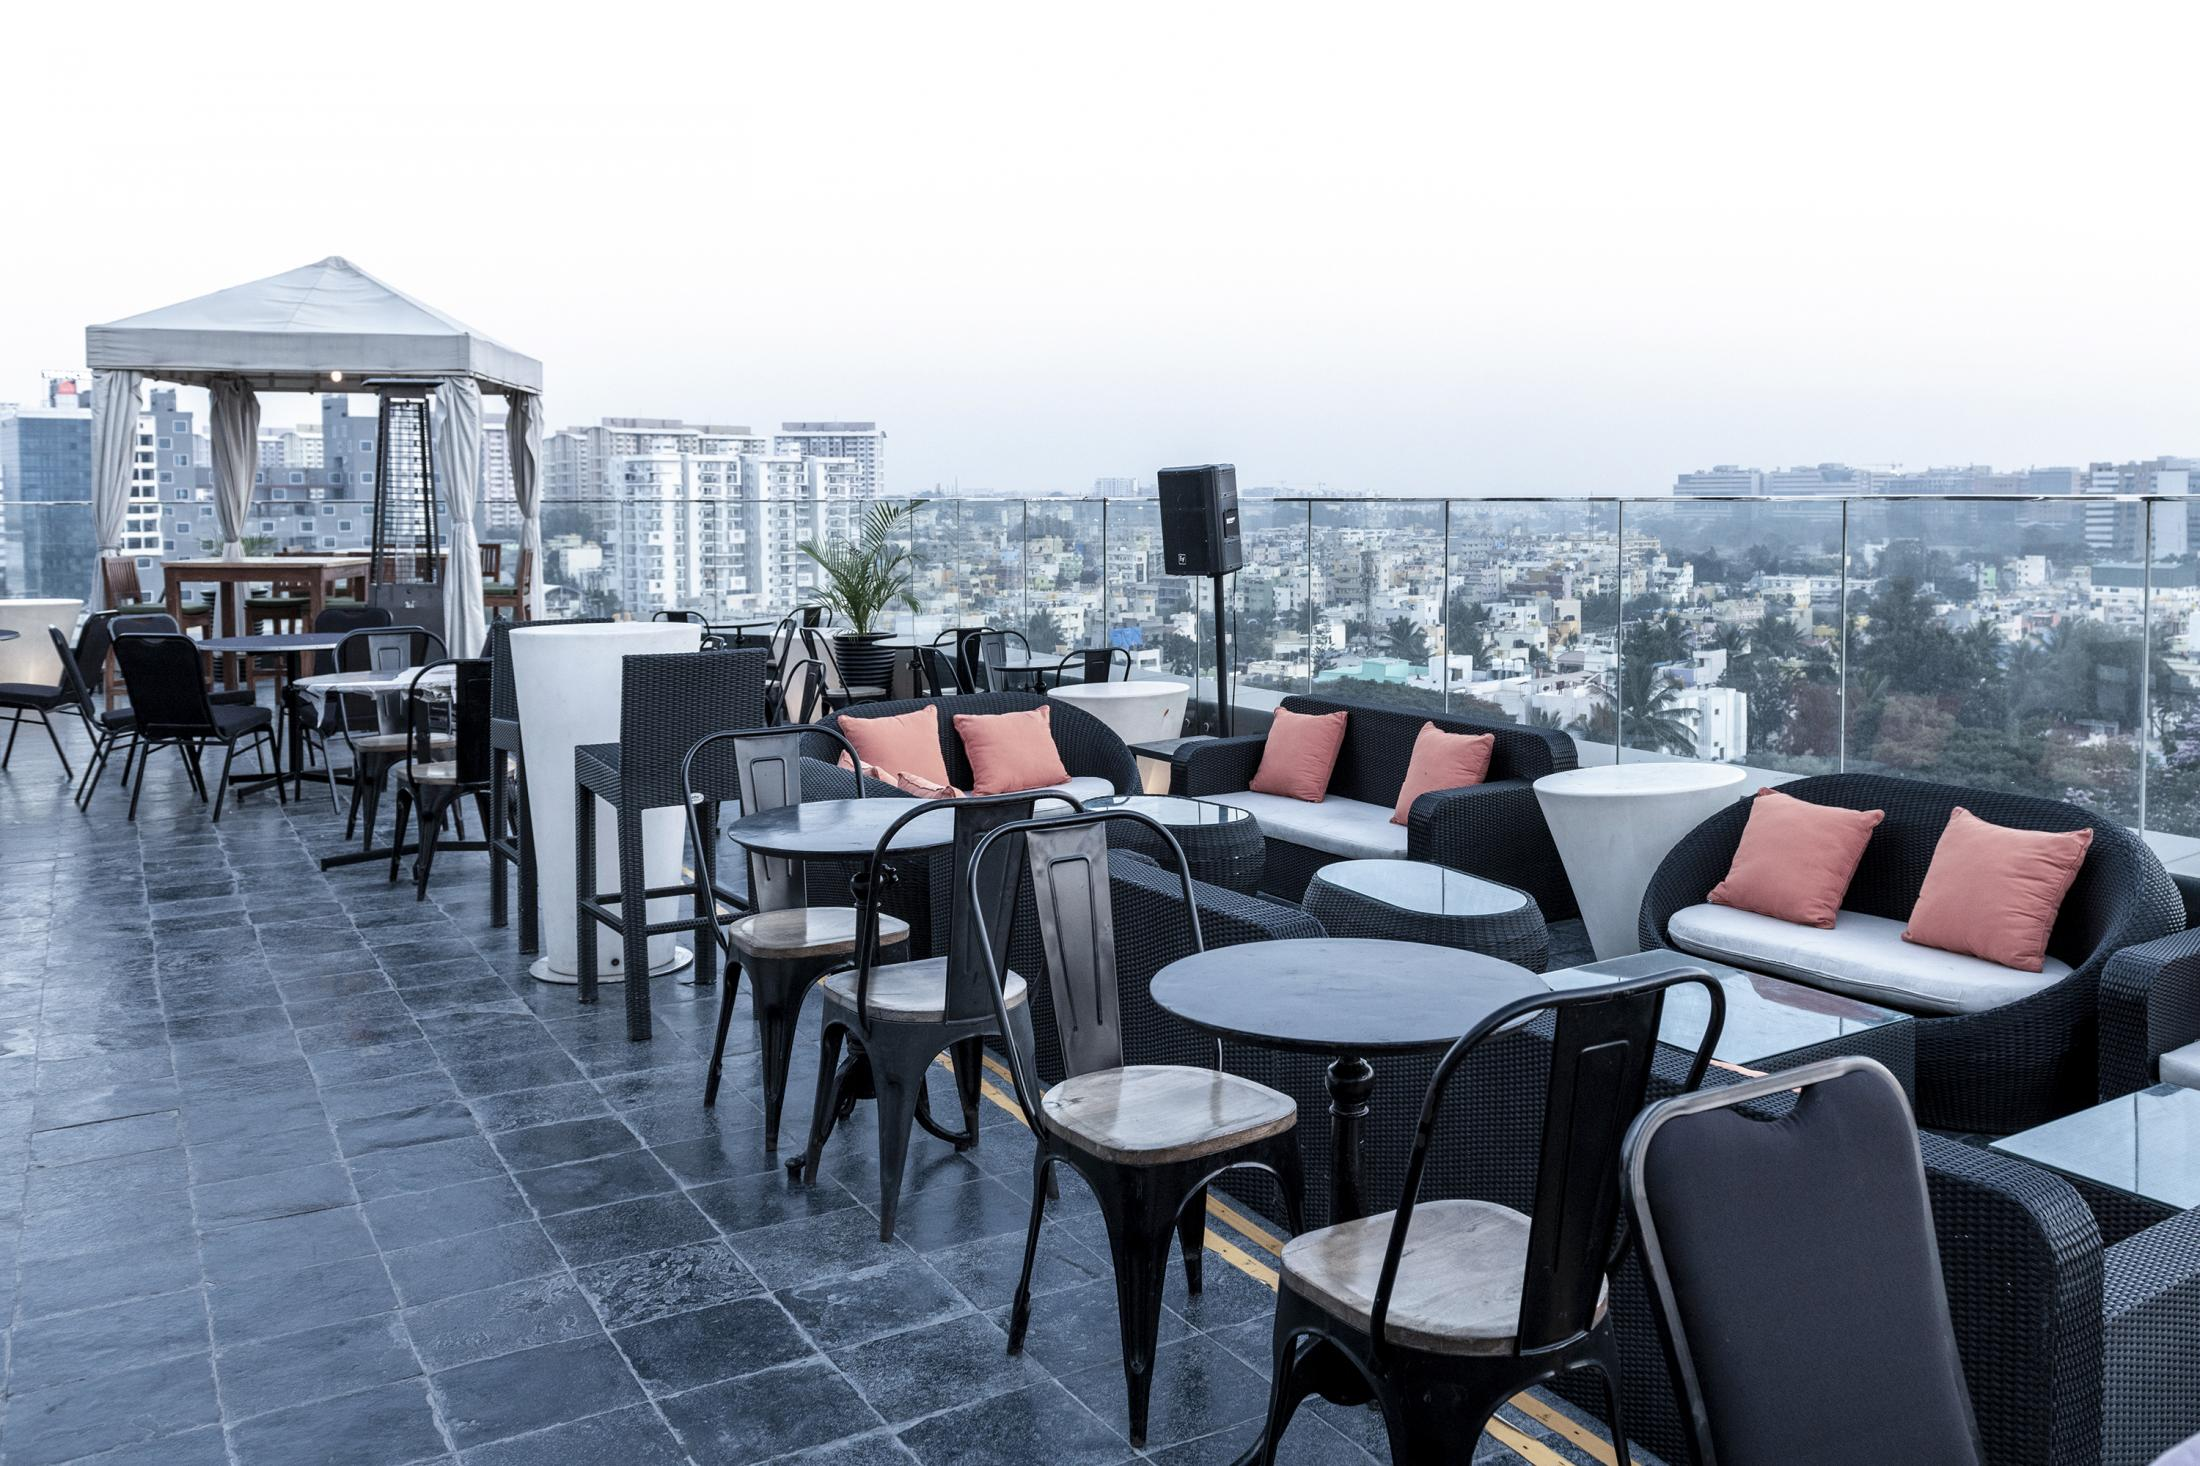 Rooftop restaurant in one of the renowned shopping malls of Bangalore.